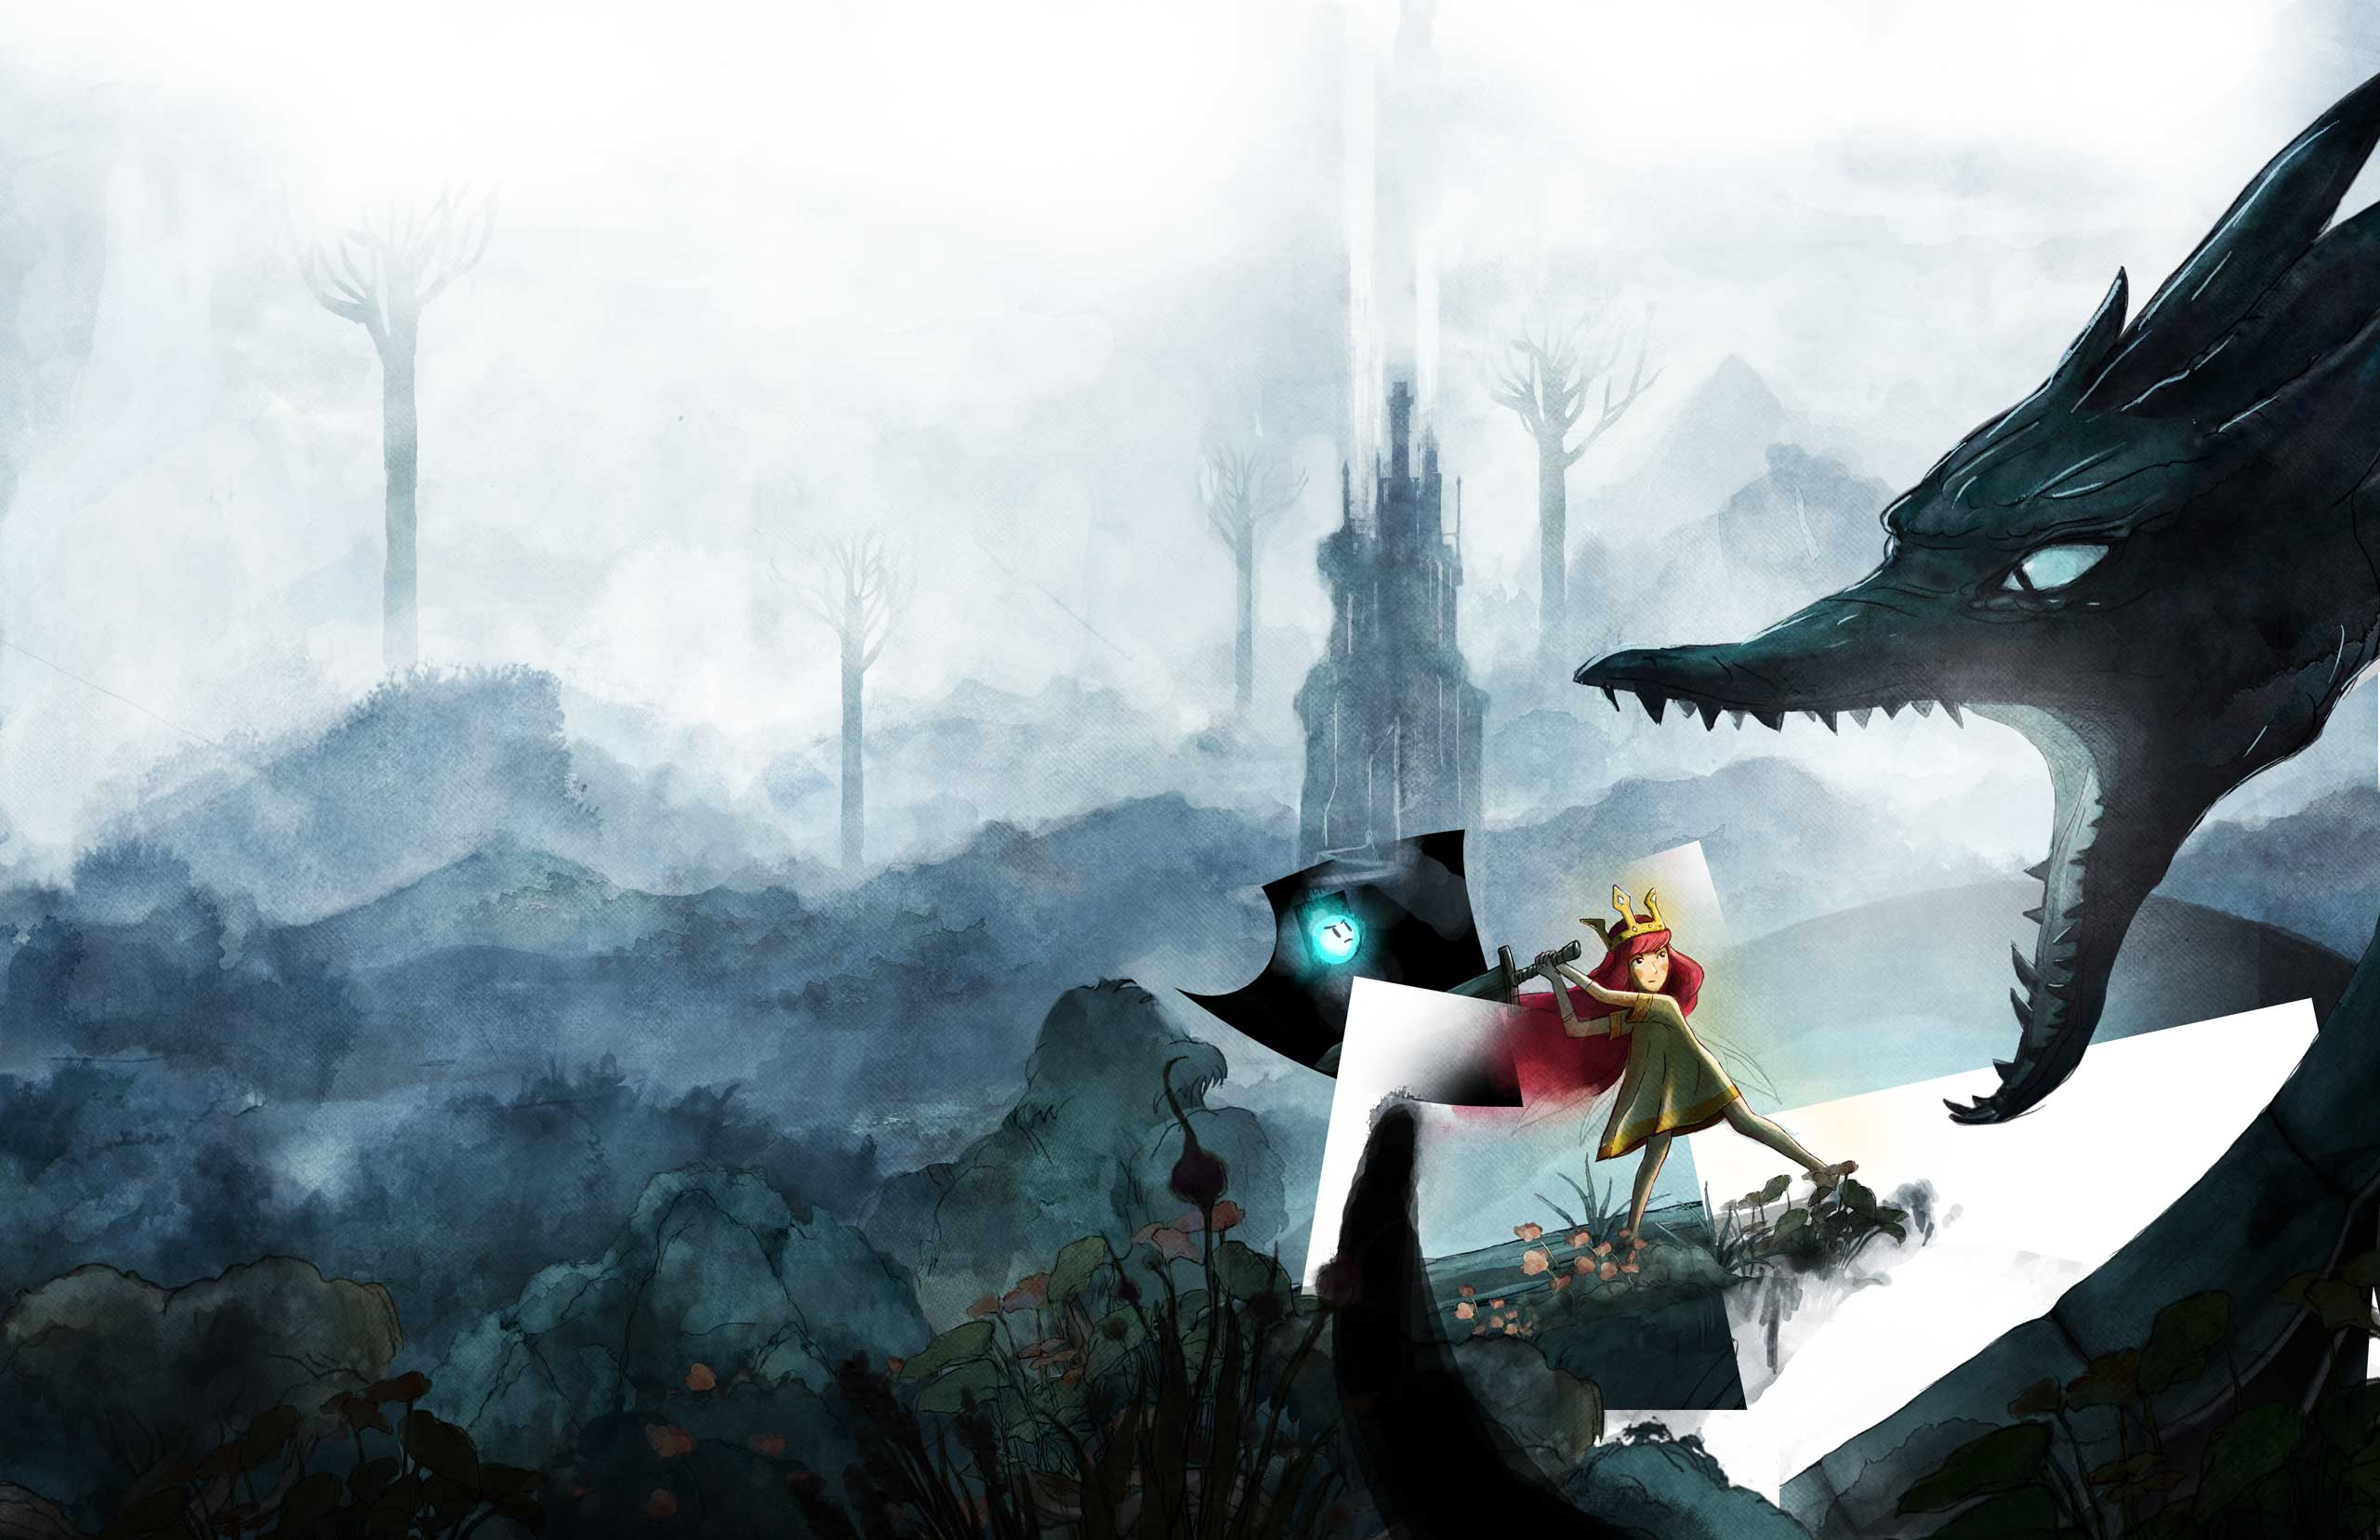 <strong>Child of Light</strong>                                                                      Inspired by filmmakers like Hayao Miyazaki and artist Yoshitaka Amano, <i>Child of Light</i>'s hand-drawn artwork puts the lie to presumptions that graphical richness depends on shader support or polygon counts.